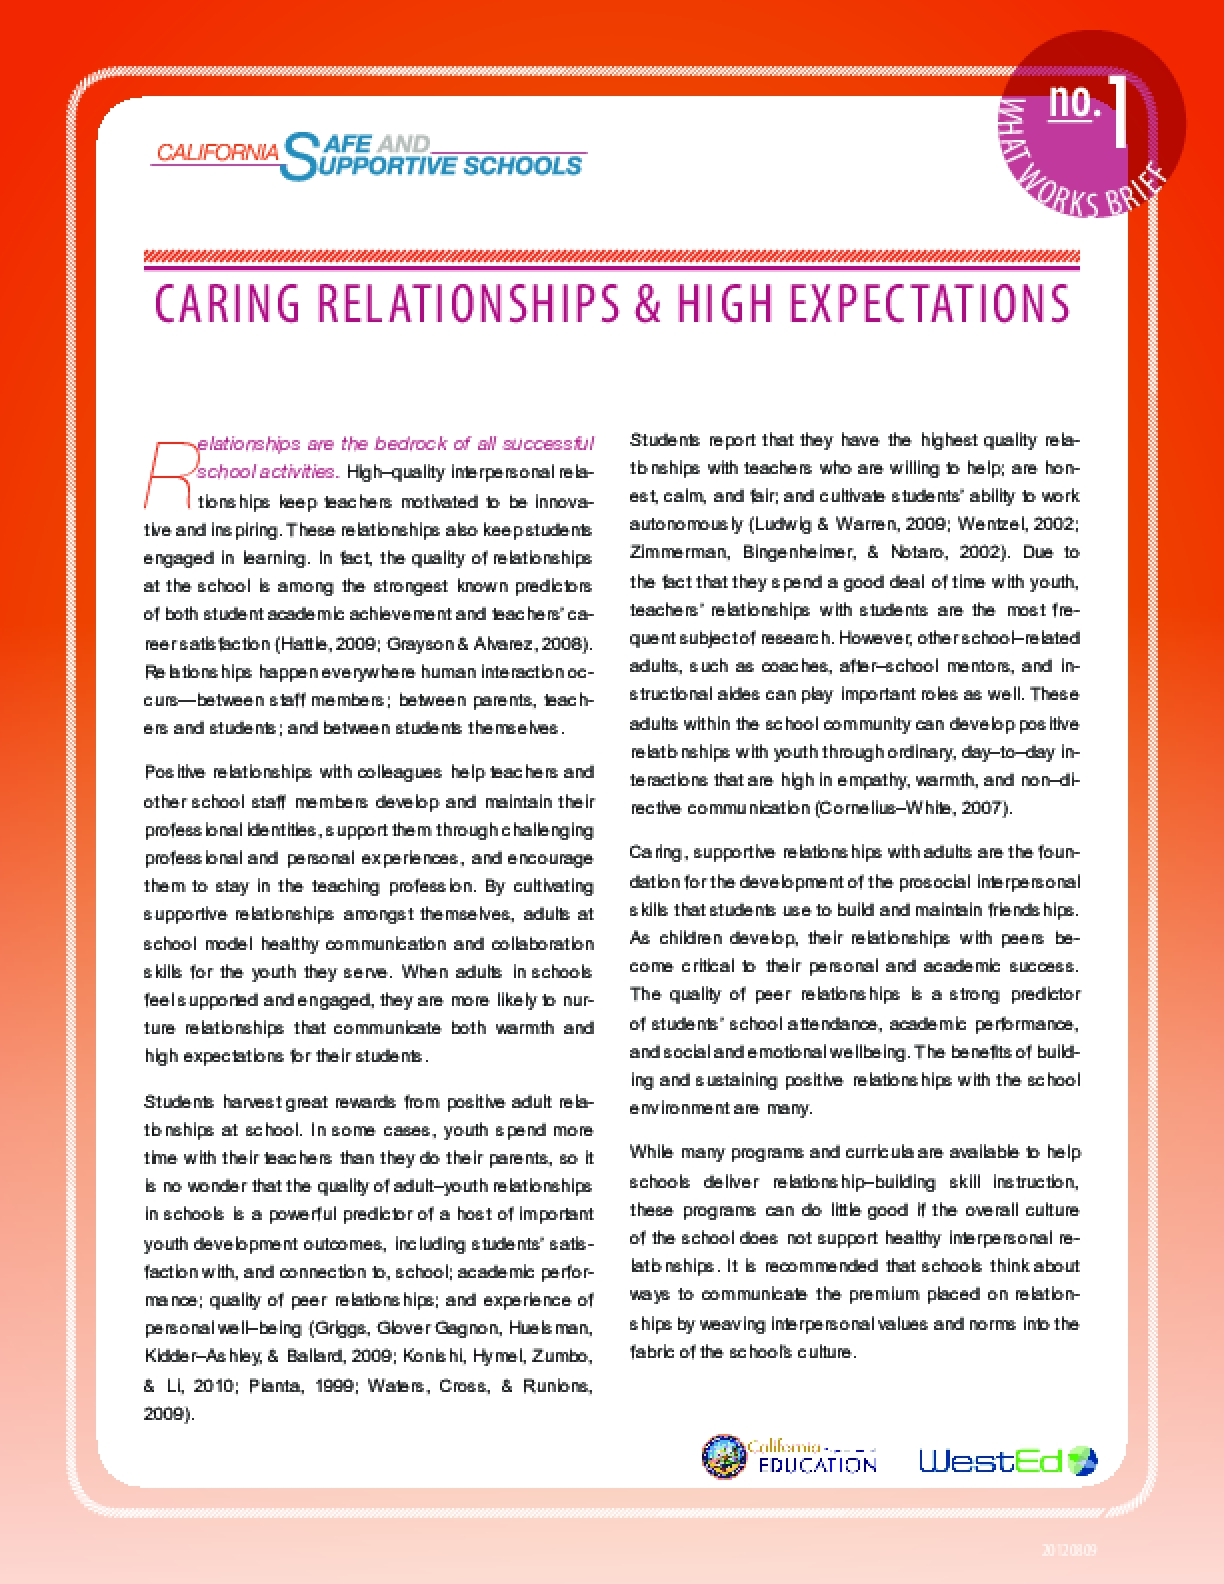 What Works Brief #1: Caring Relationships and High Expectations